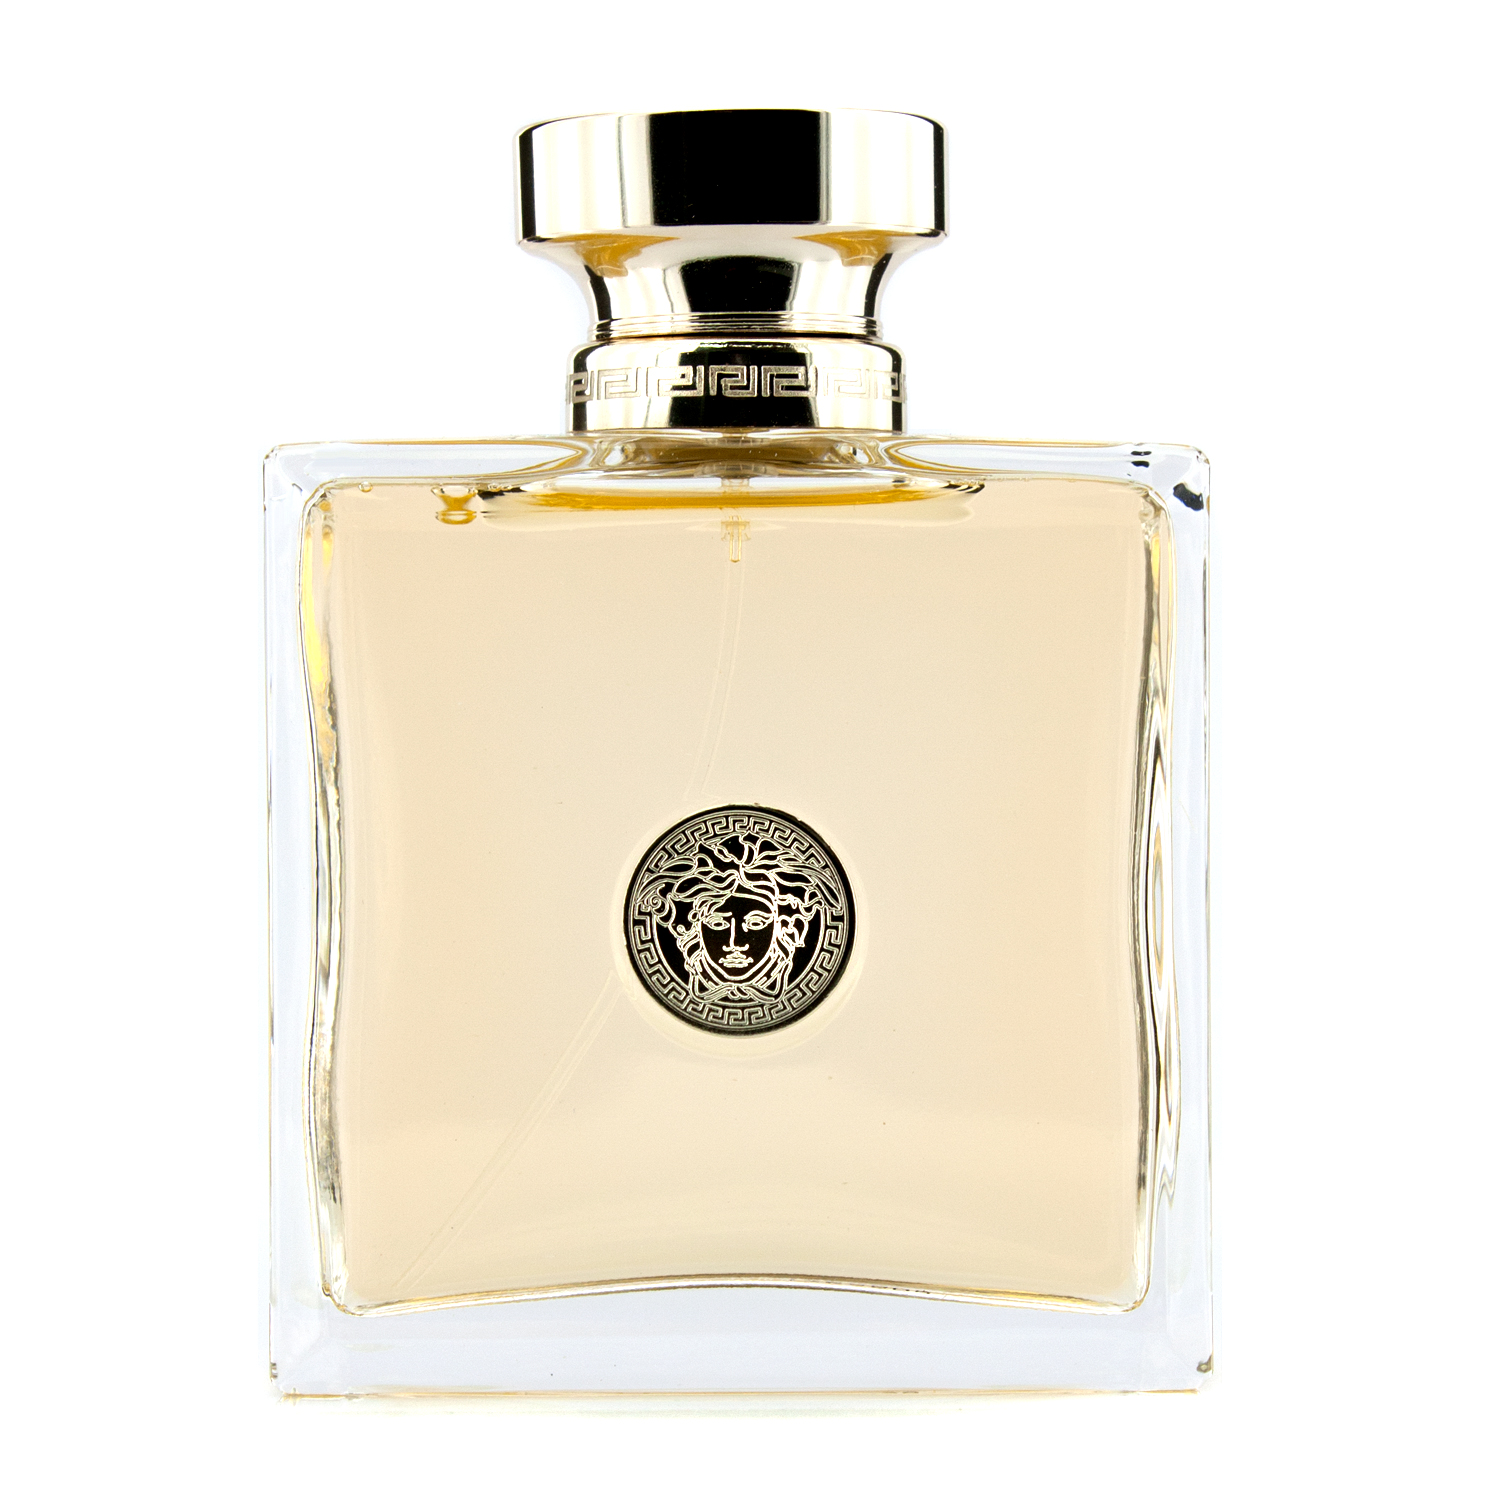 น้ำหอม Versace Signature EDT For Women 100ml. Nobox.